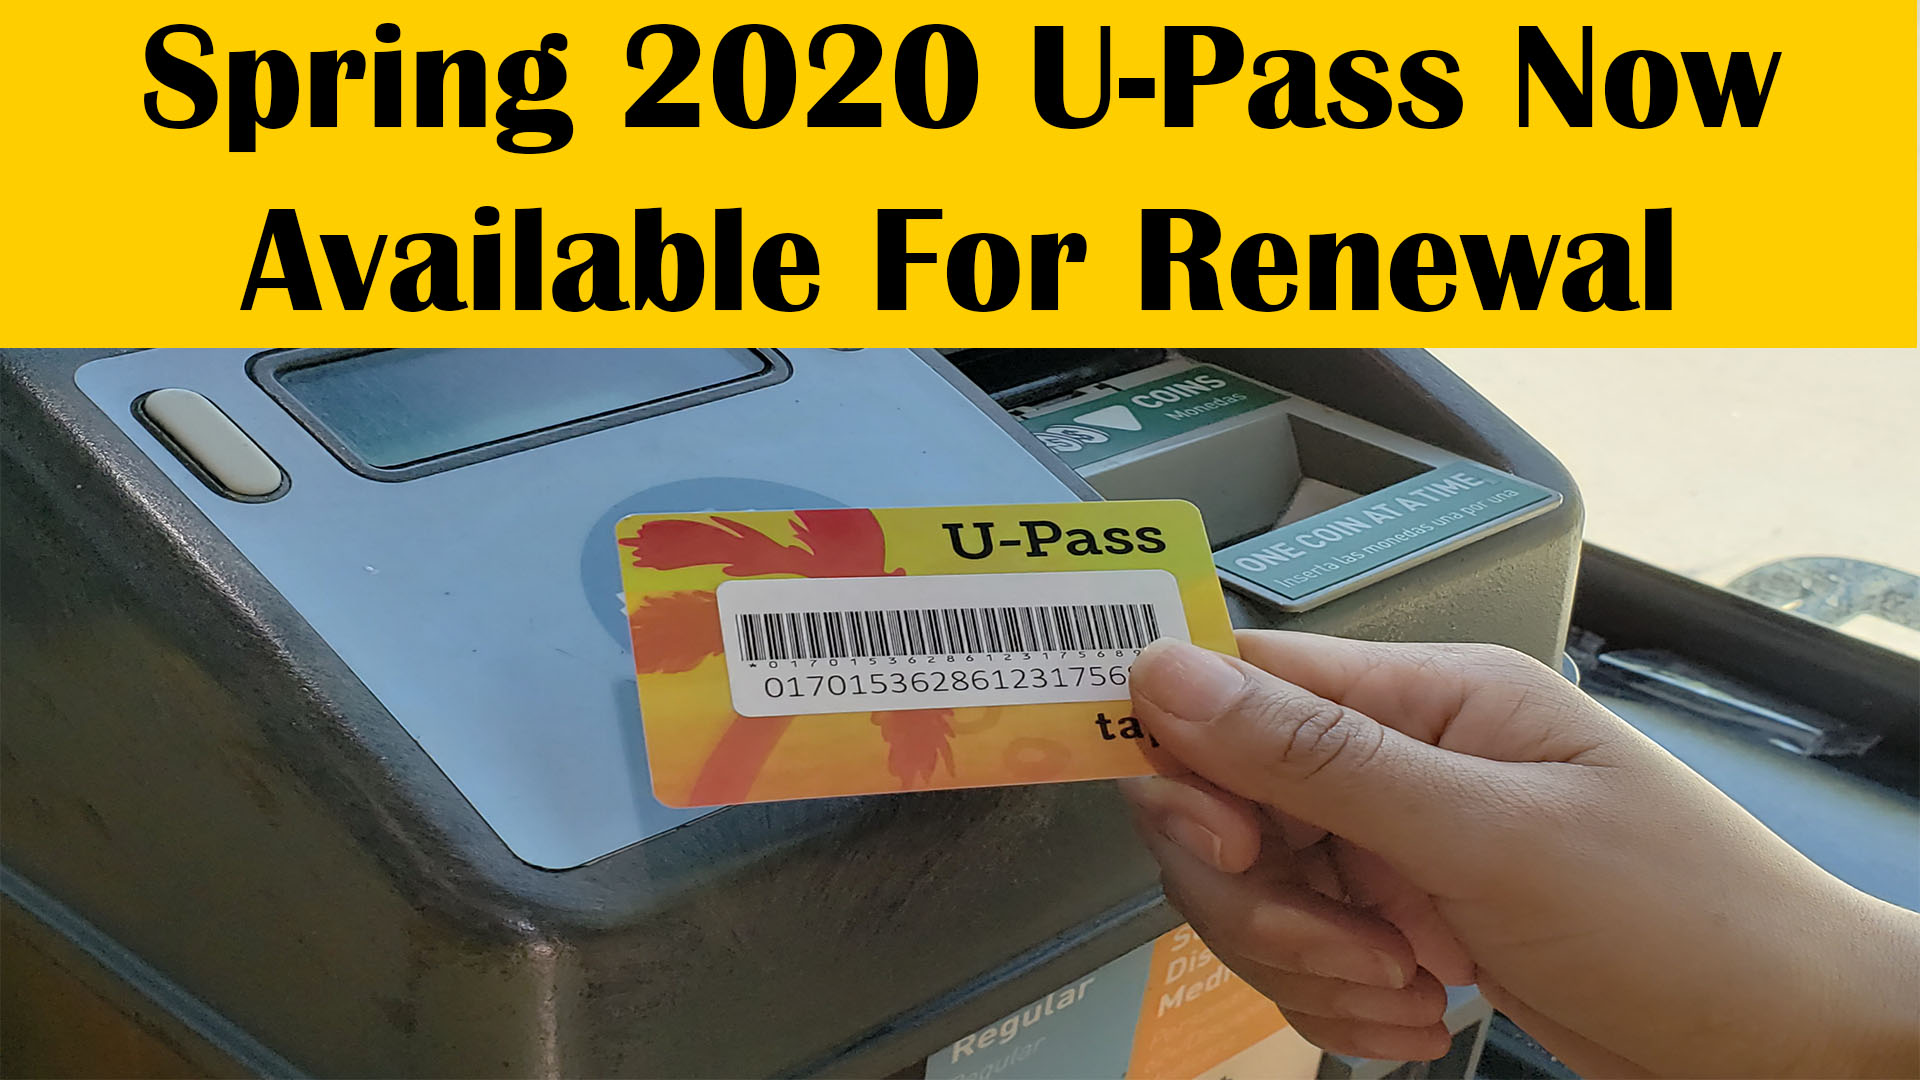 Spring 2020 U-Pass Now Available for Renewal